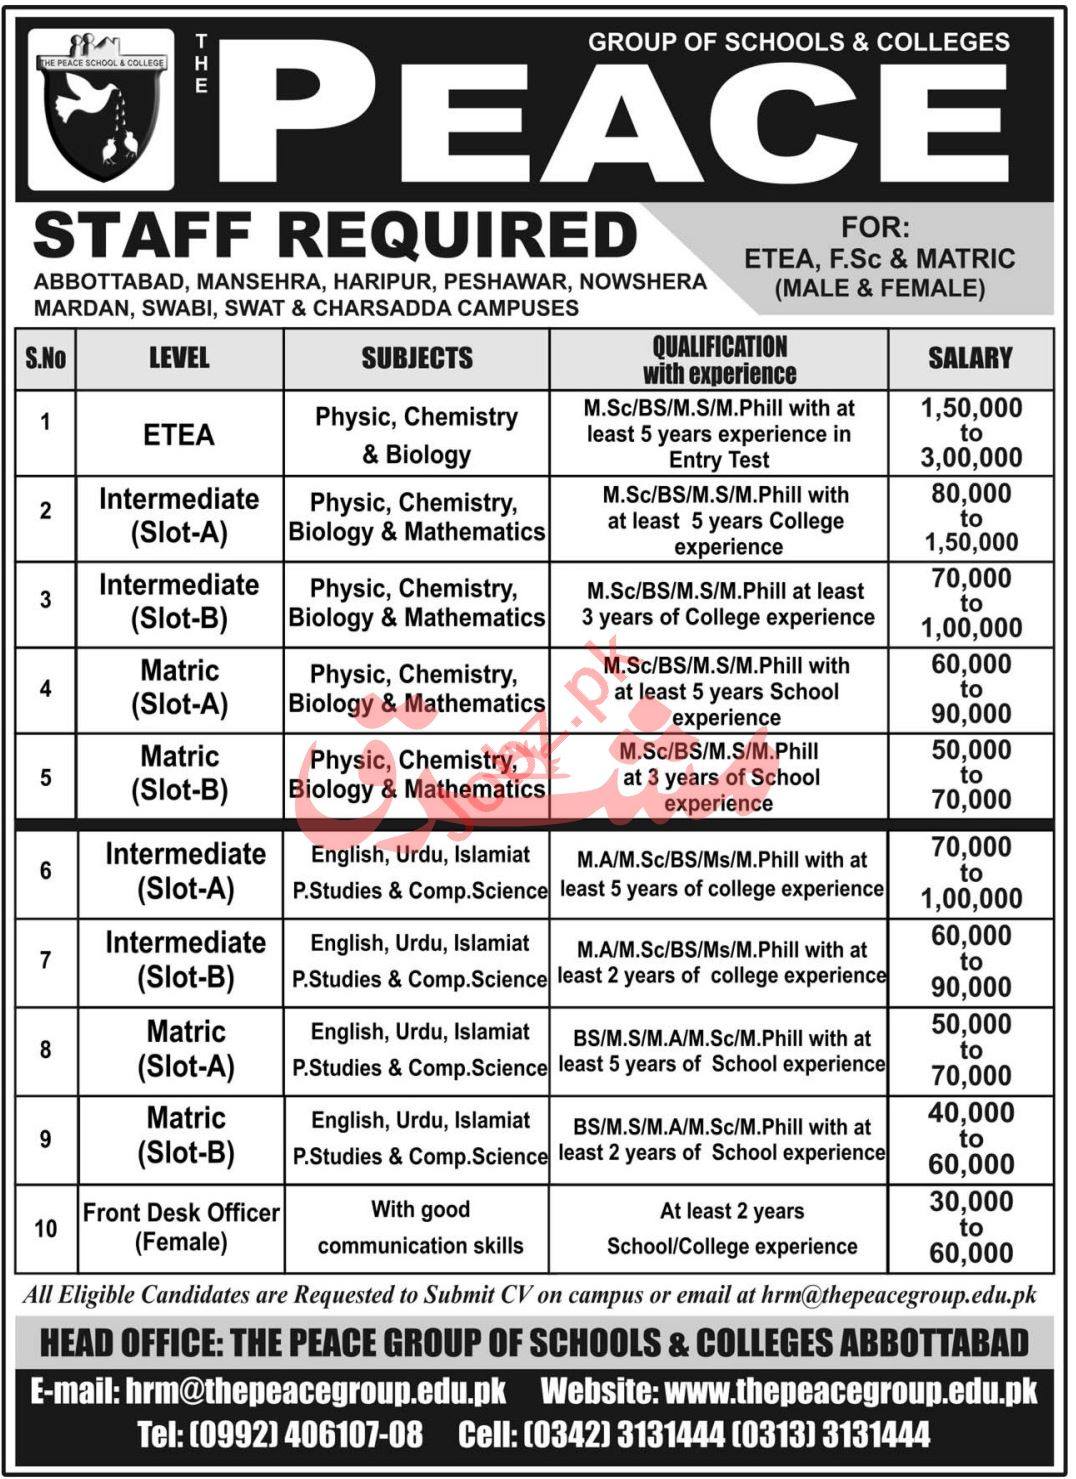 Peace Group of Schools & Colleges Abbottabad Jobs 2020